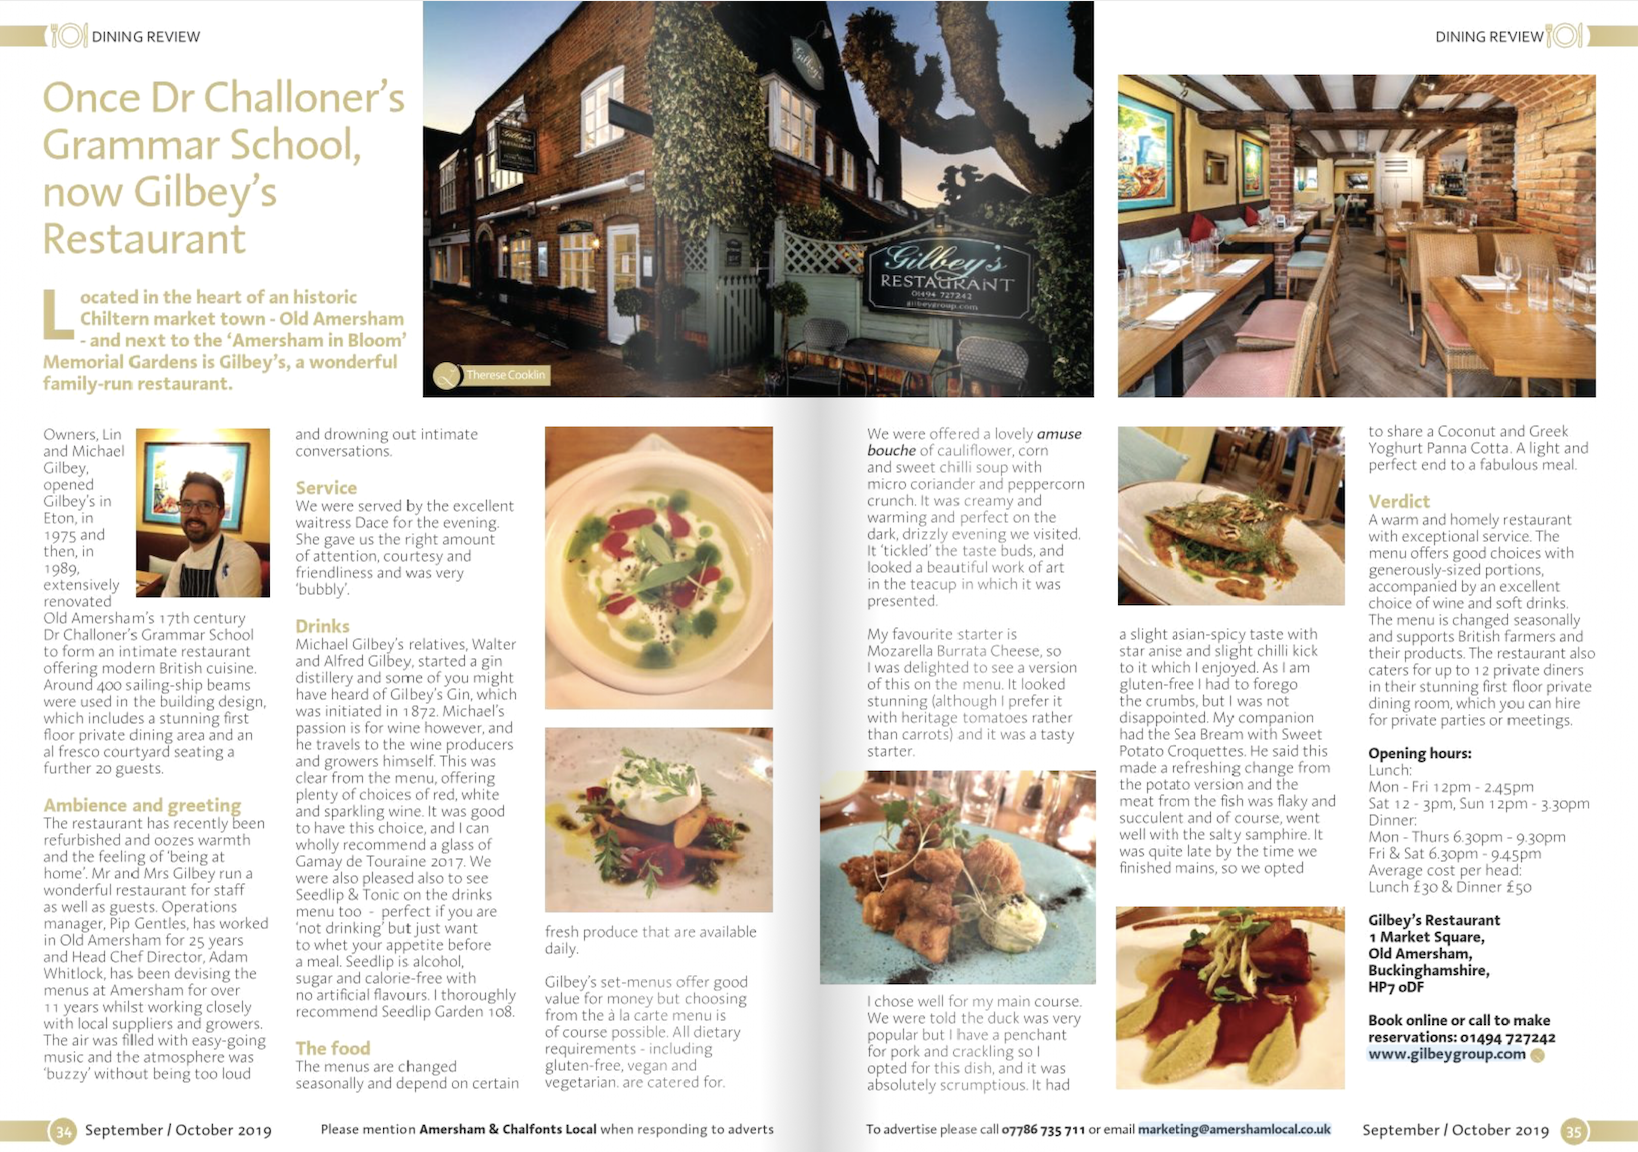 gilbeys-dining-review-amersham-chalfonts-together-community